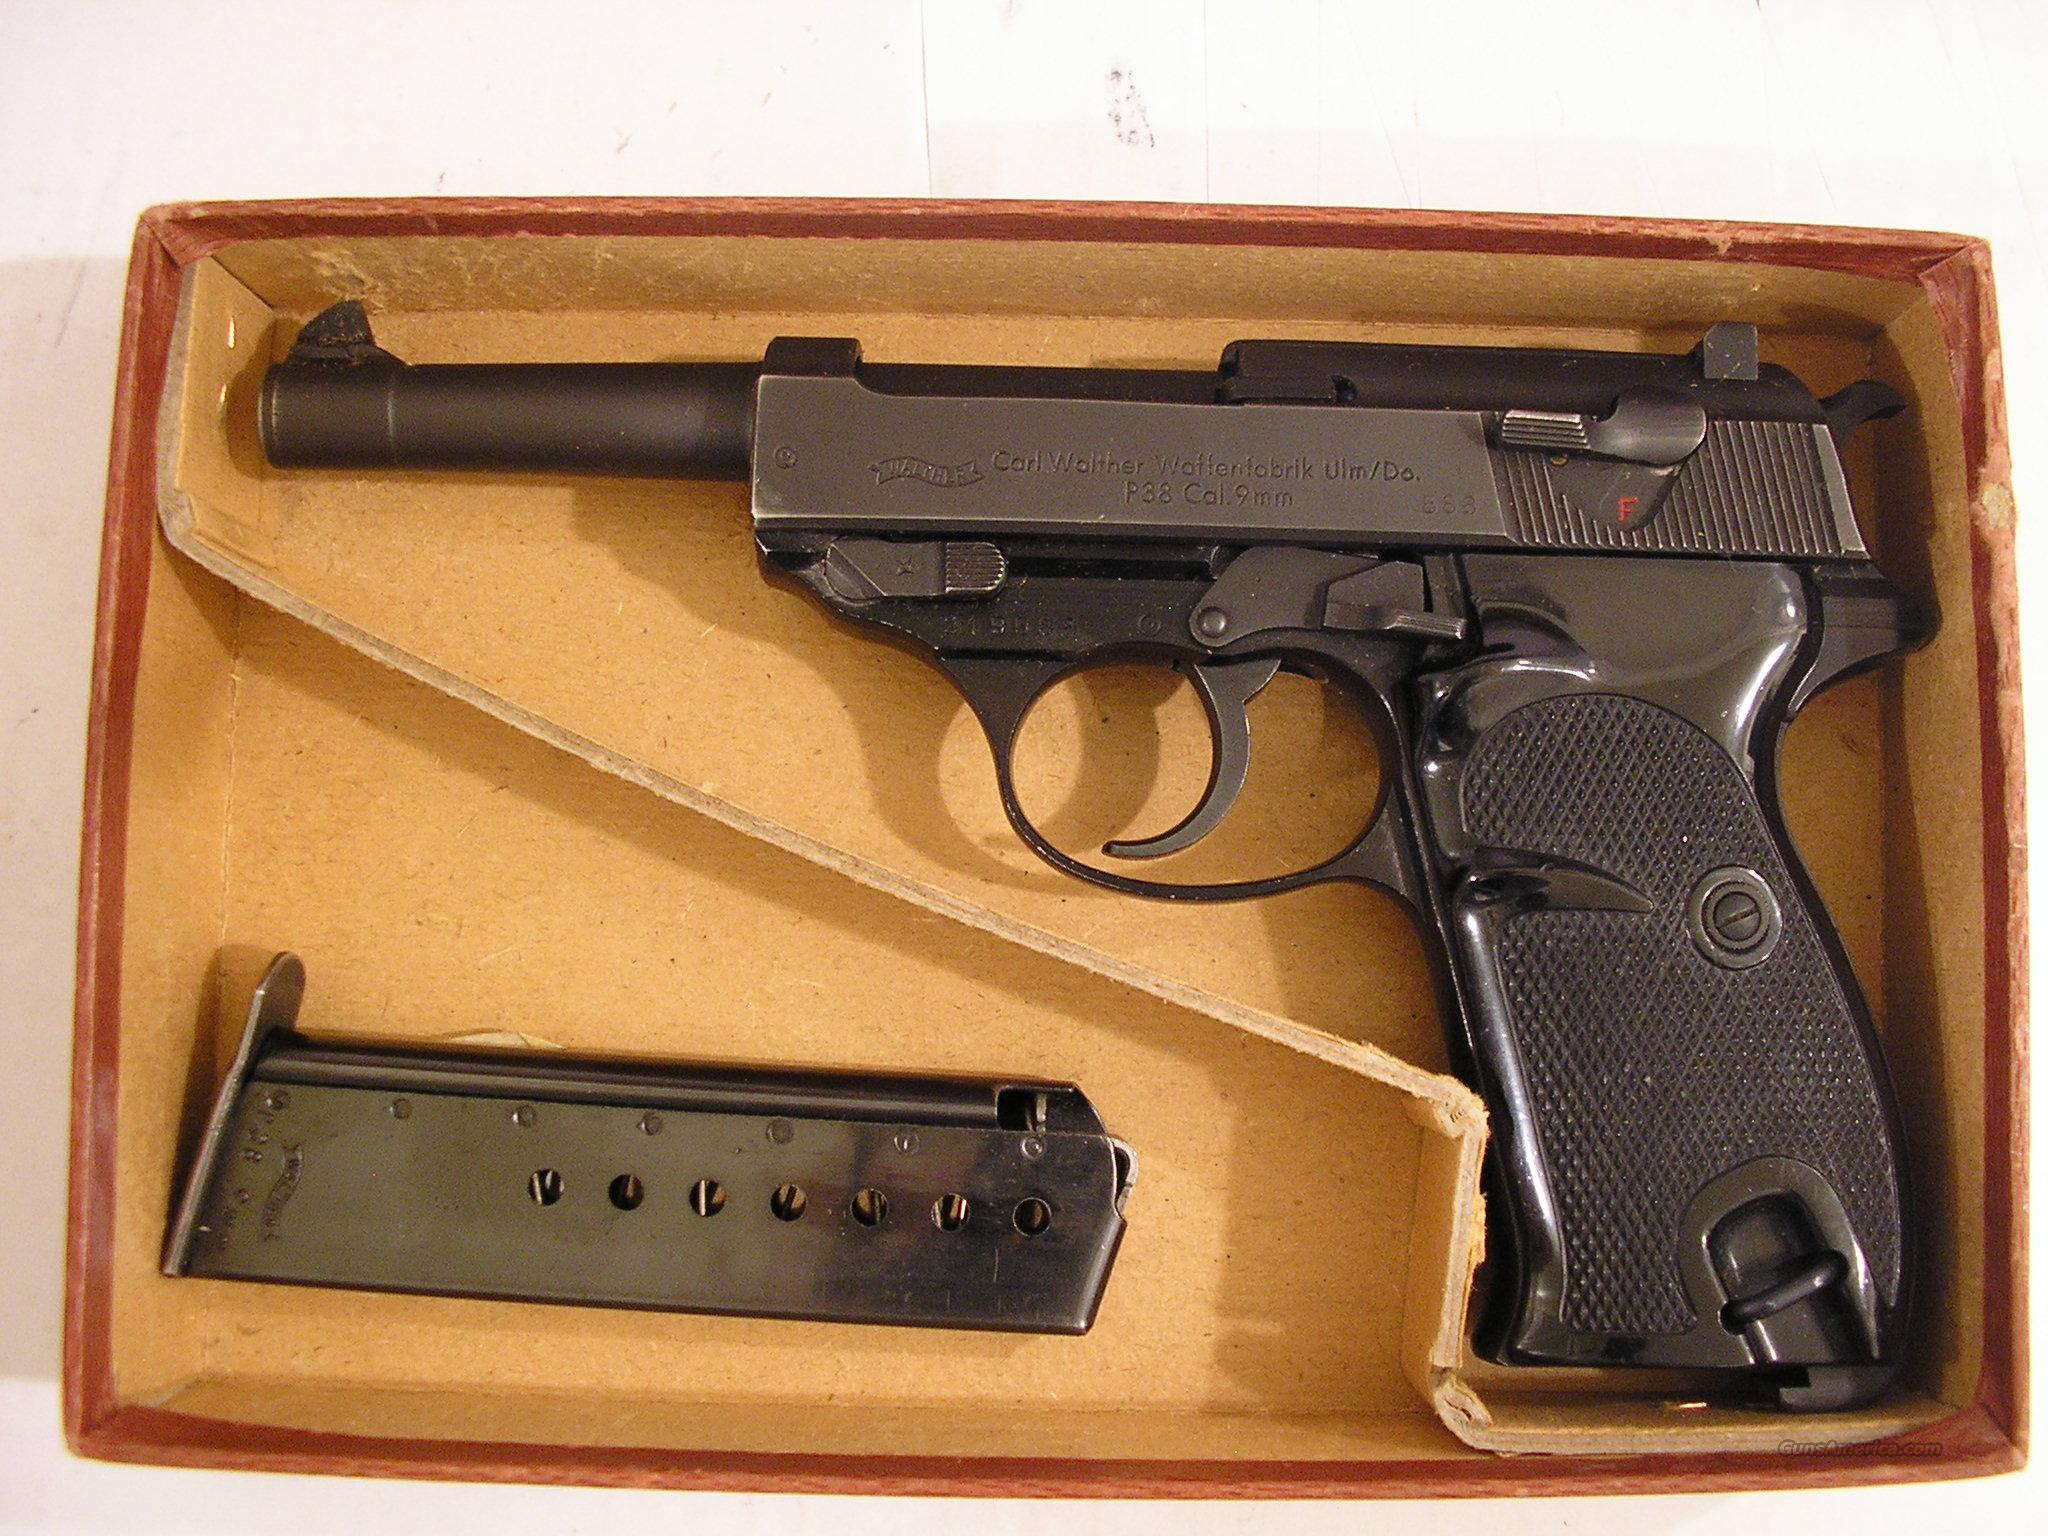 WALTHER POST WWII P-38 9MM PISTOL  Guns > Pistols > Walther Pistols > Post WWII > Large Frame Autos